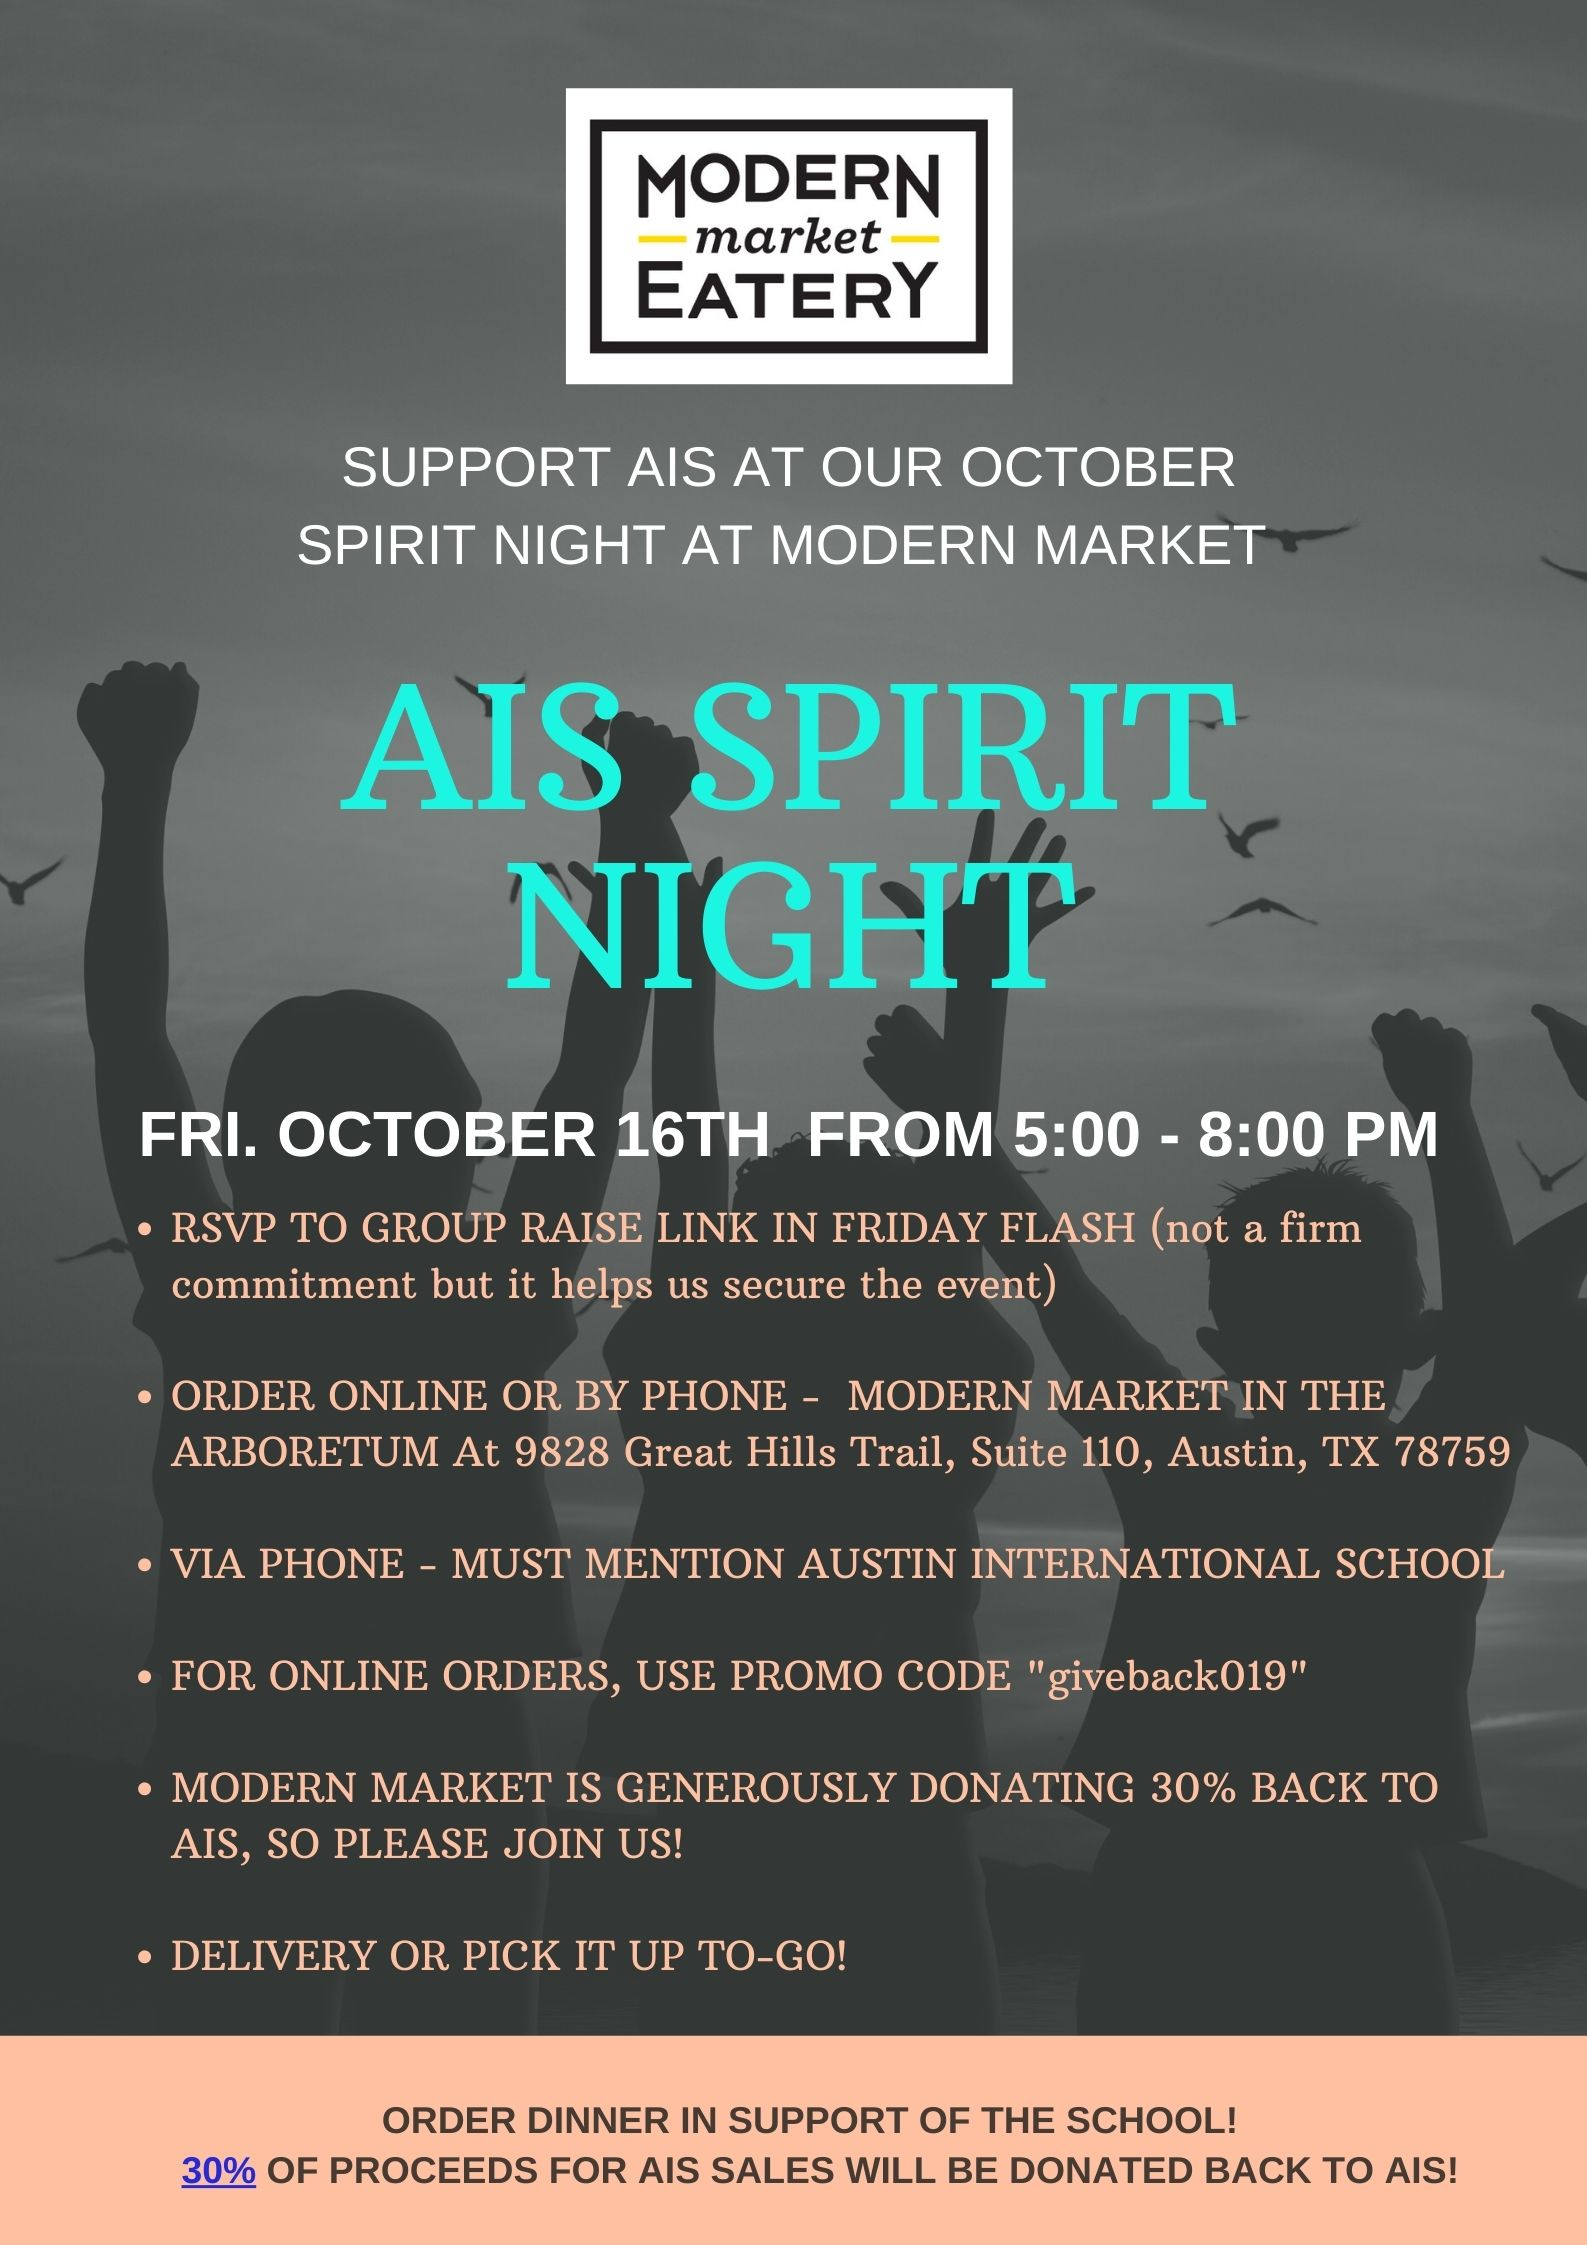 Spirit Night at Modern Market-Arboretum